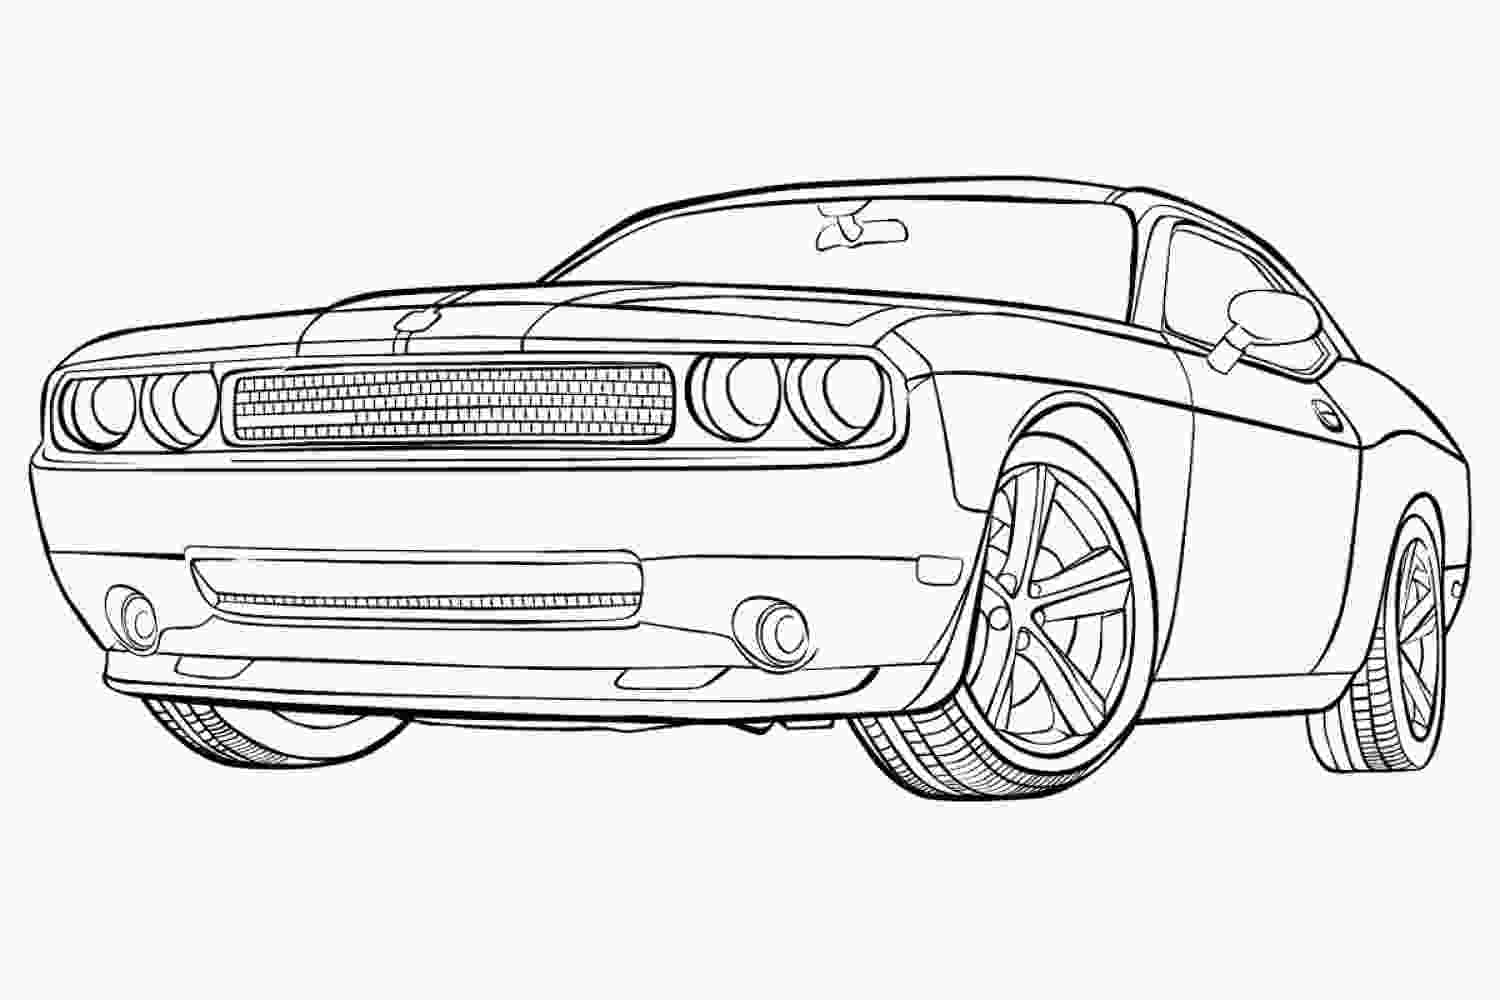 coloring pages of muscle cars muscle car coloring pages to download and print for free